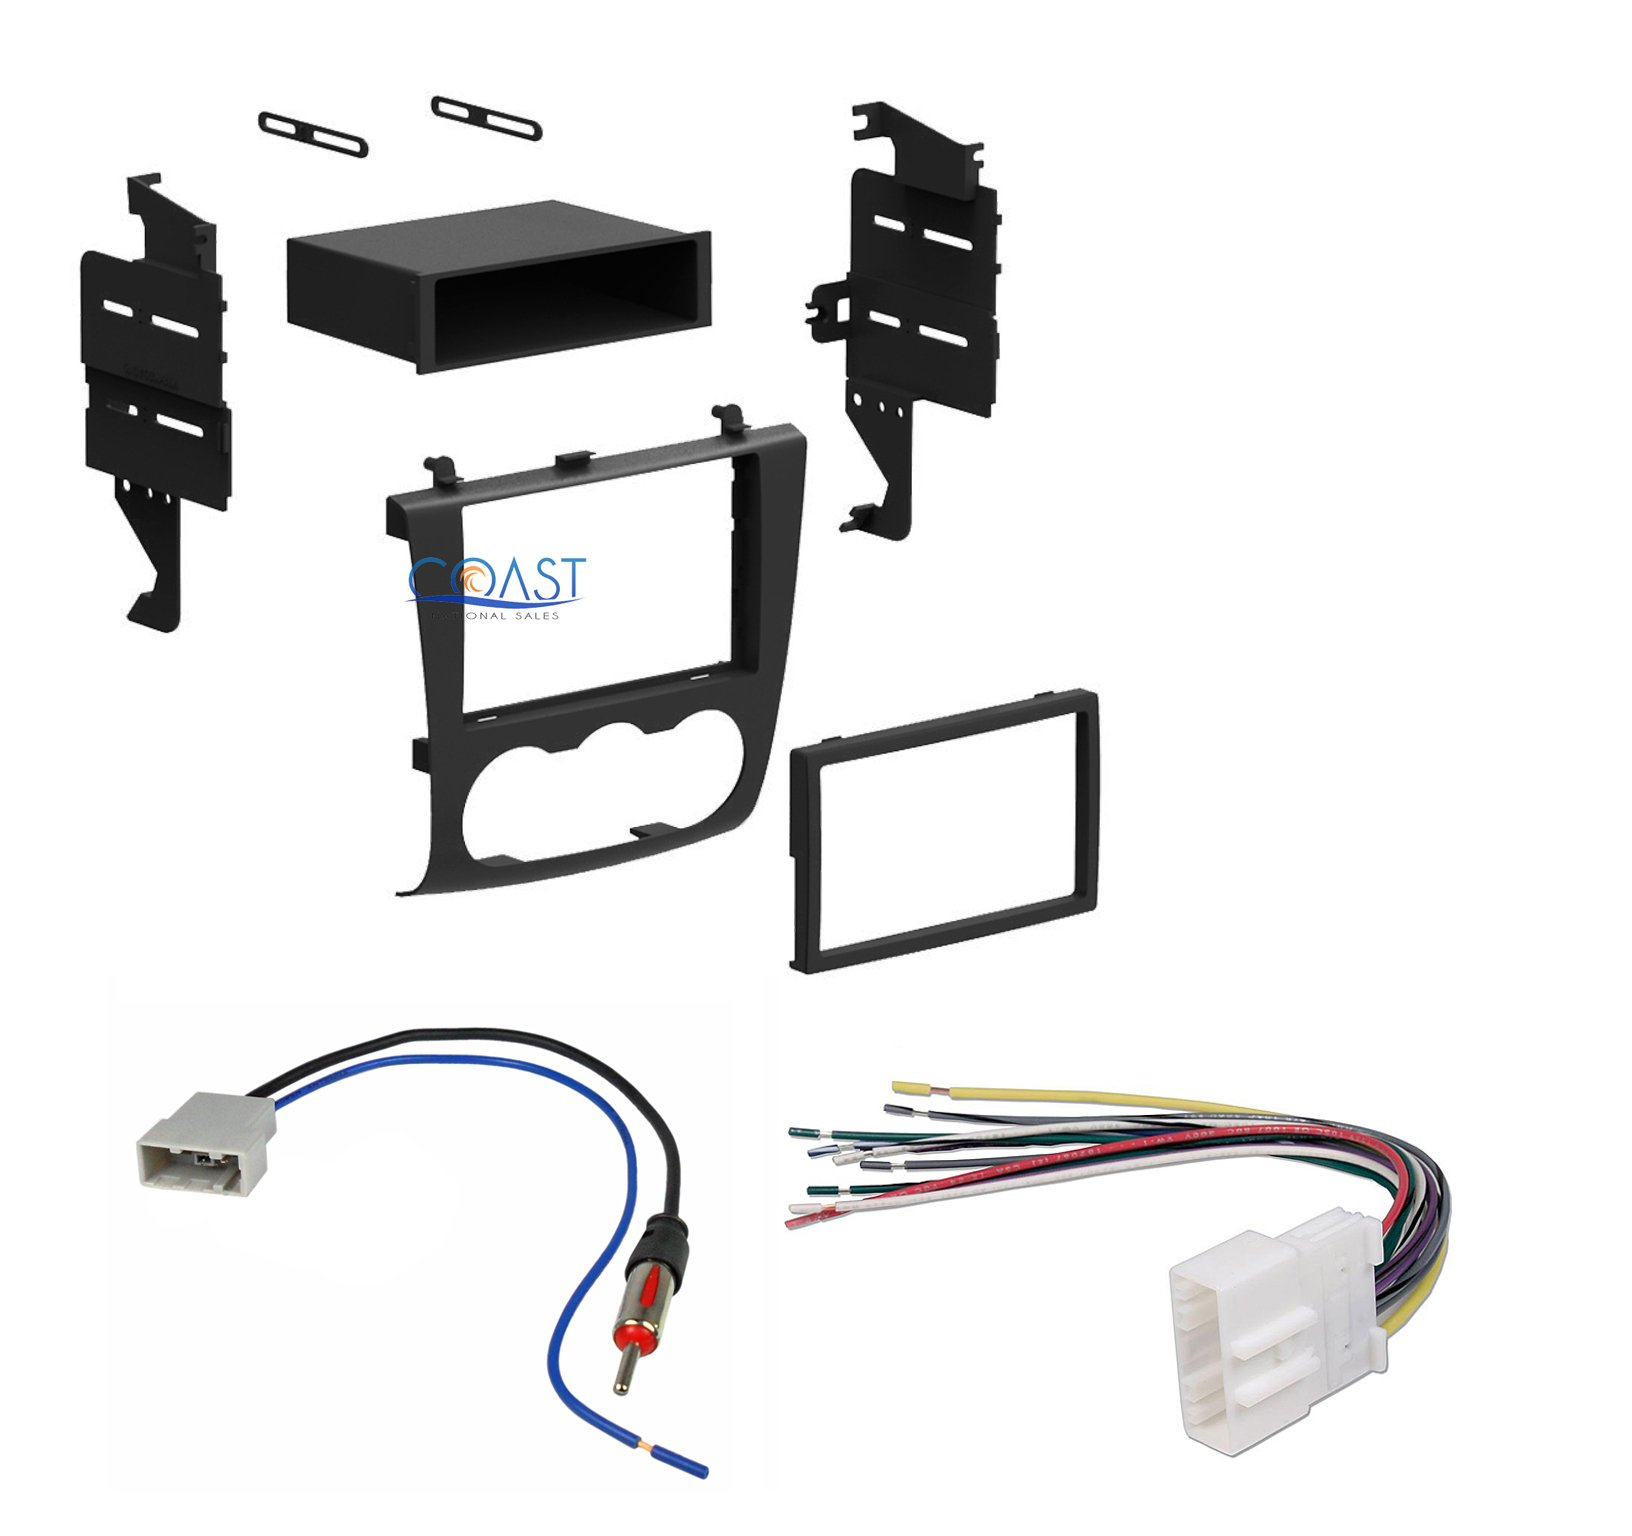 2007 2008 2009 2010 2011 Nissan Altima Single or Double Din Dash Kit Install Wire Harness & Antenna